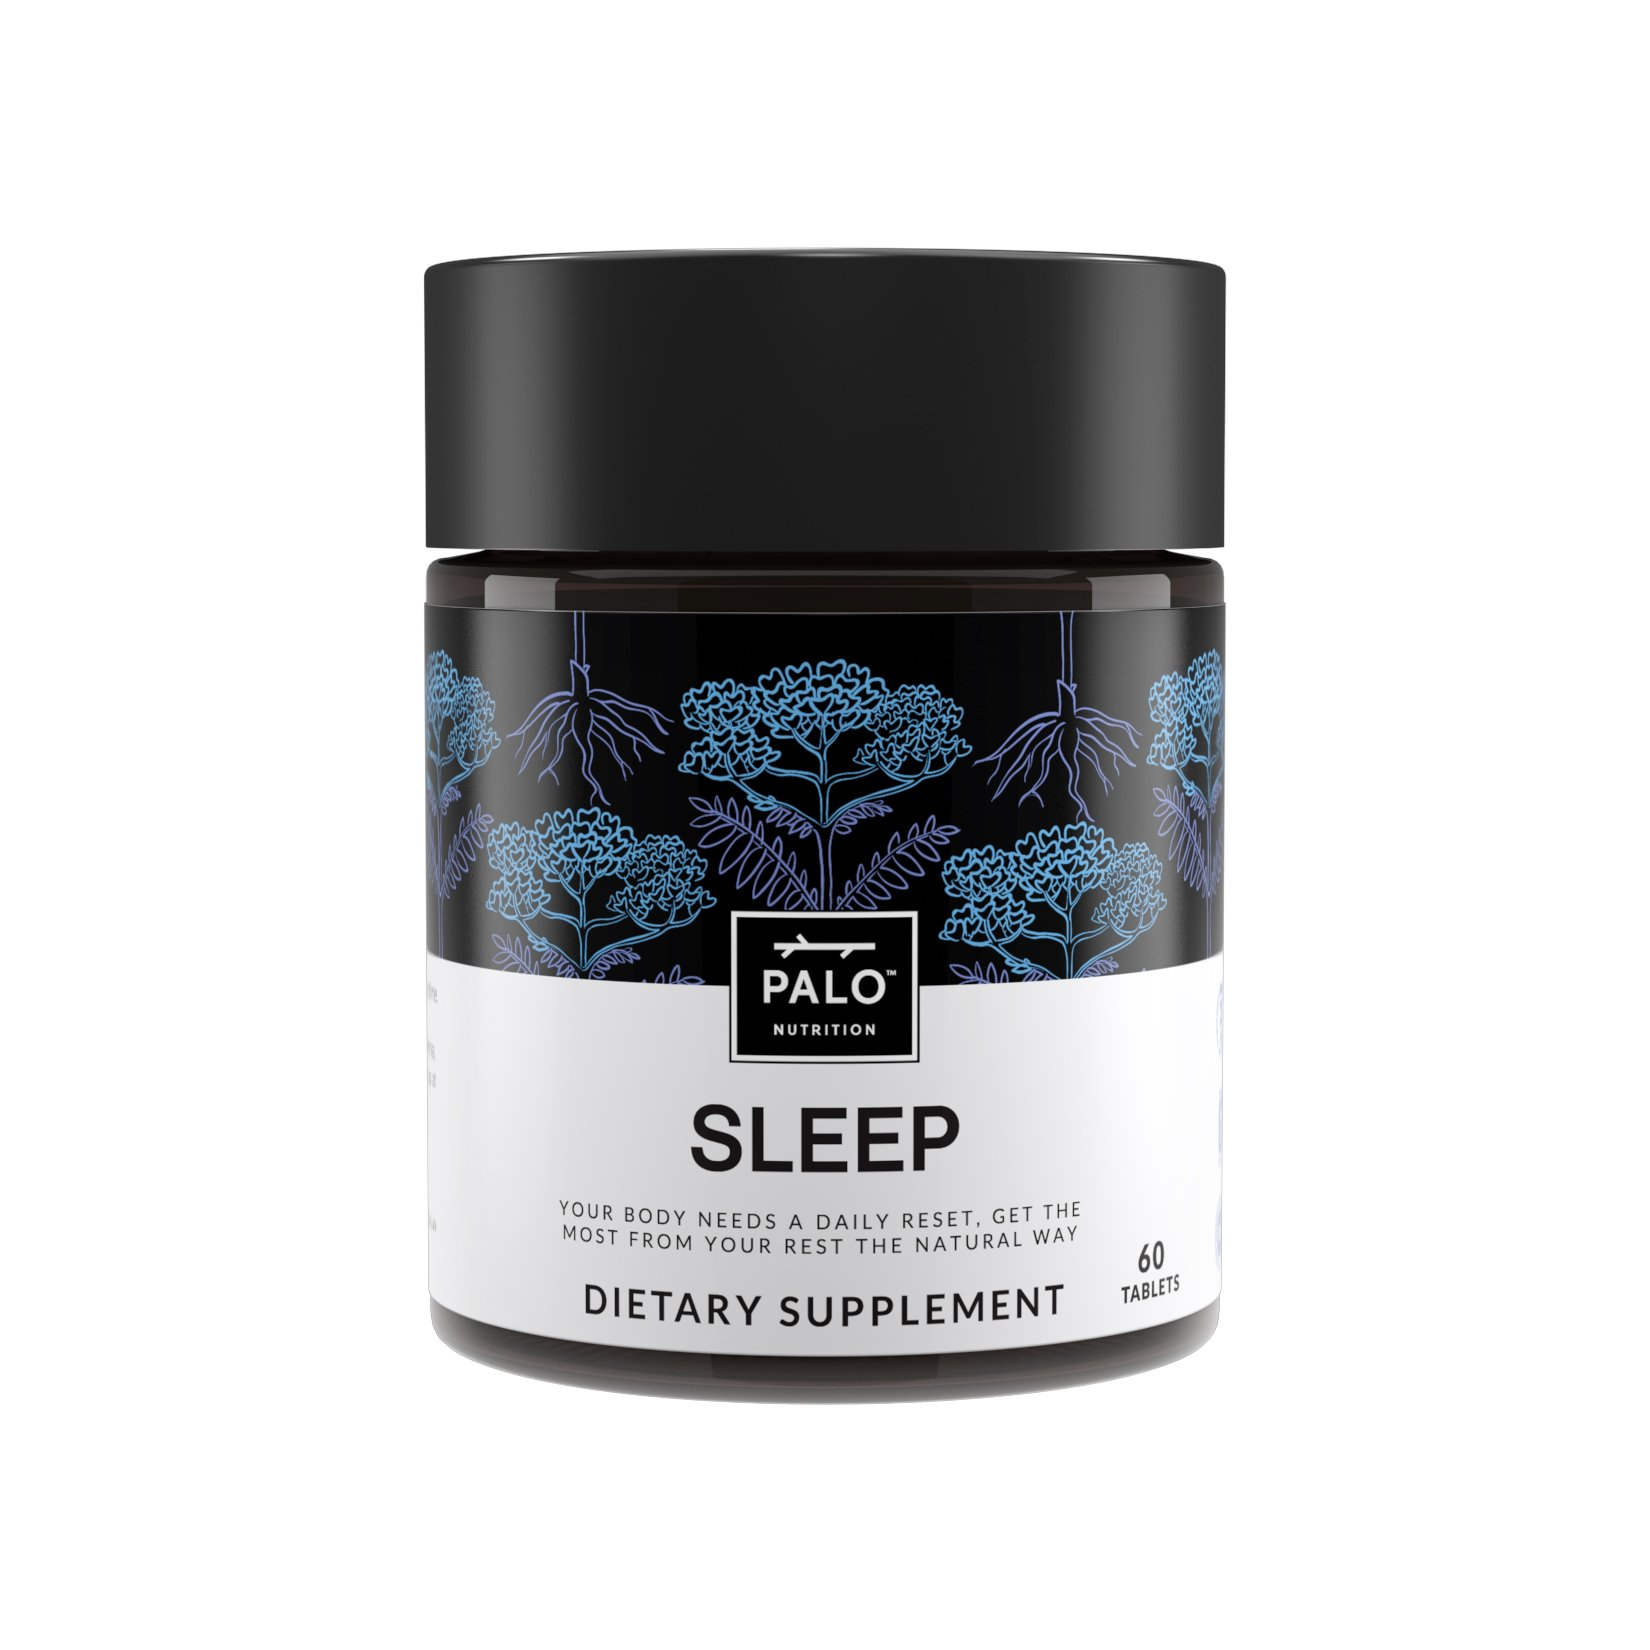 Natural Sleep Aid, Non-Habit Sleep Supplement. All Natural Formula with Valerian Root, Passion Flower, Hops, California Poppy, Minerals and Antioxidants. By PALO Nutrition